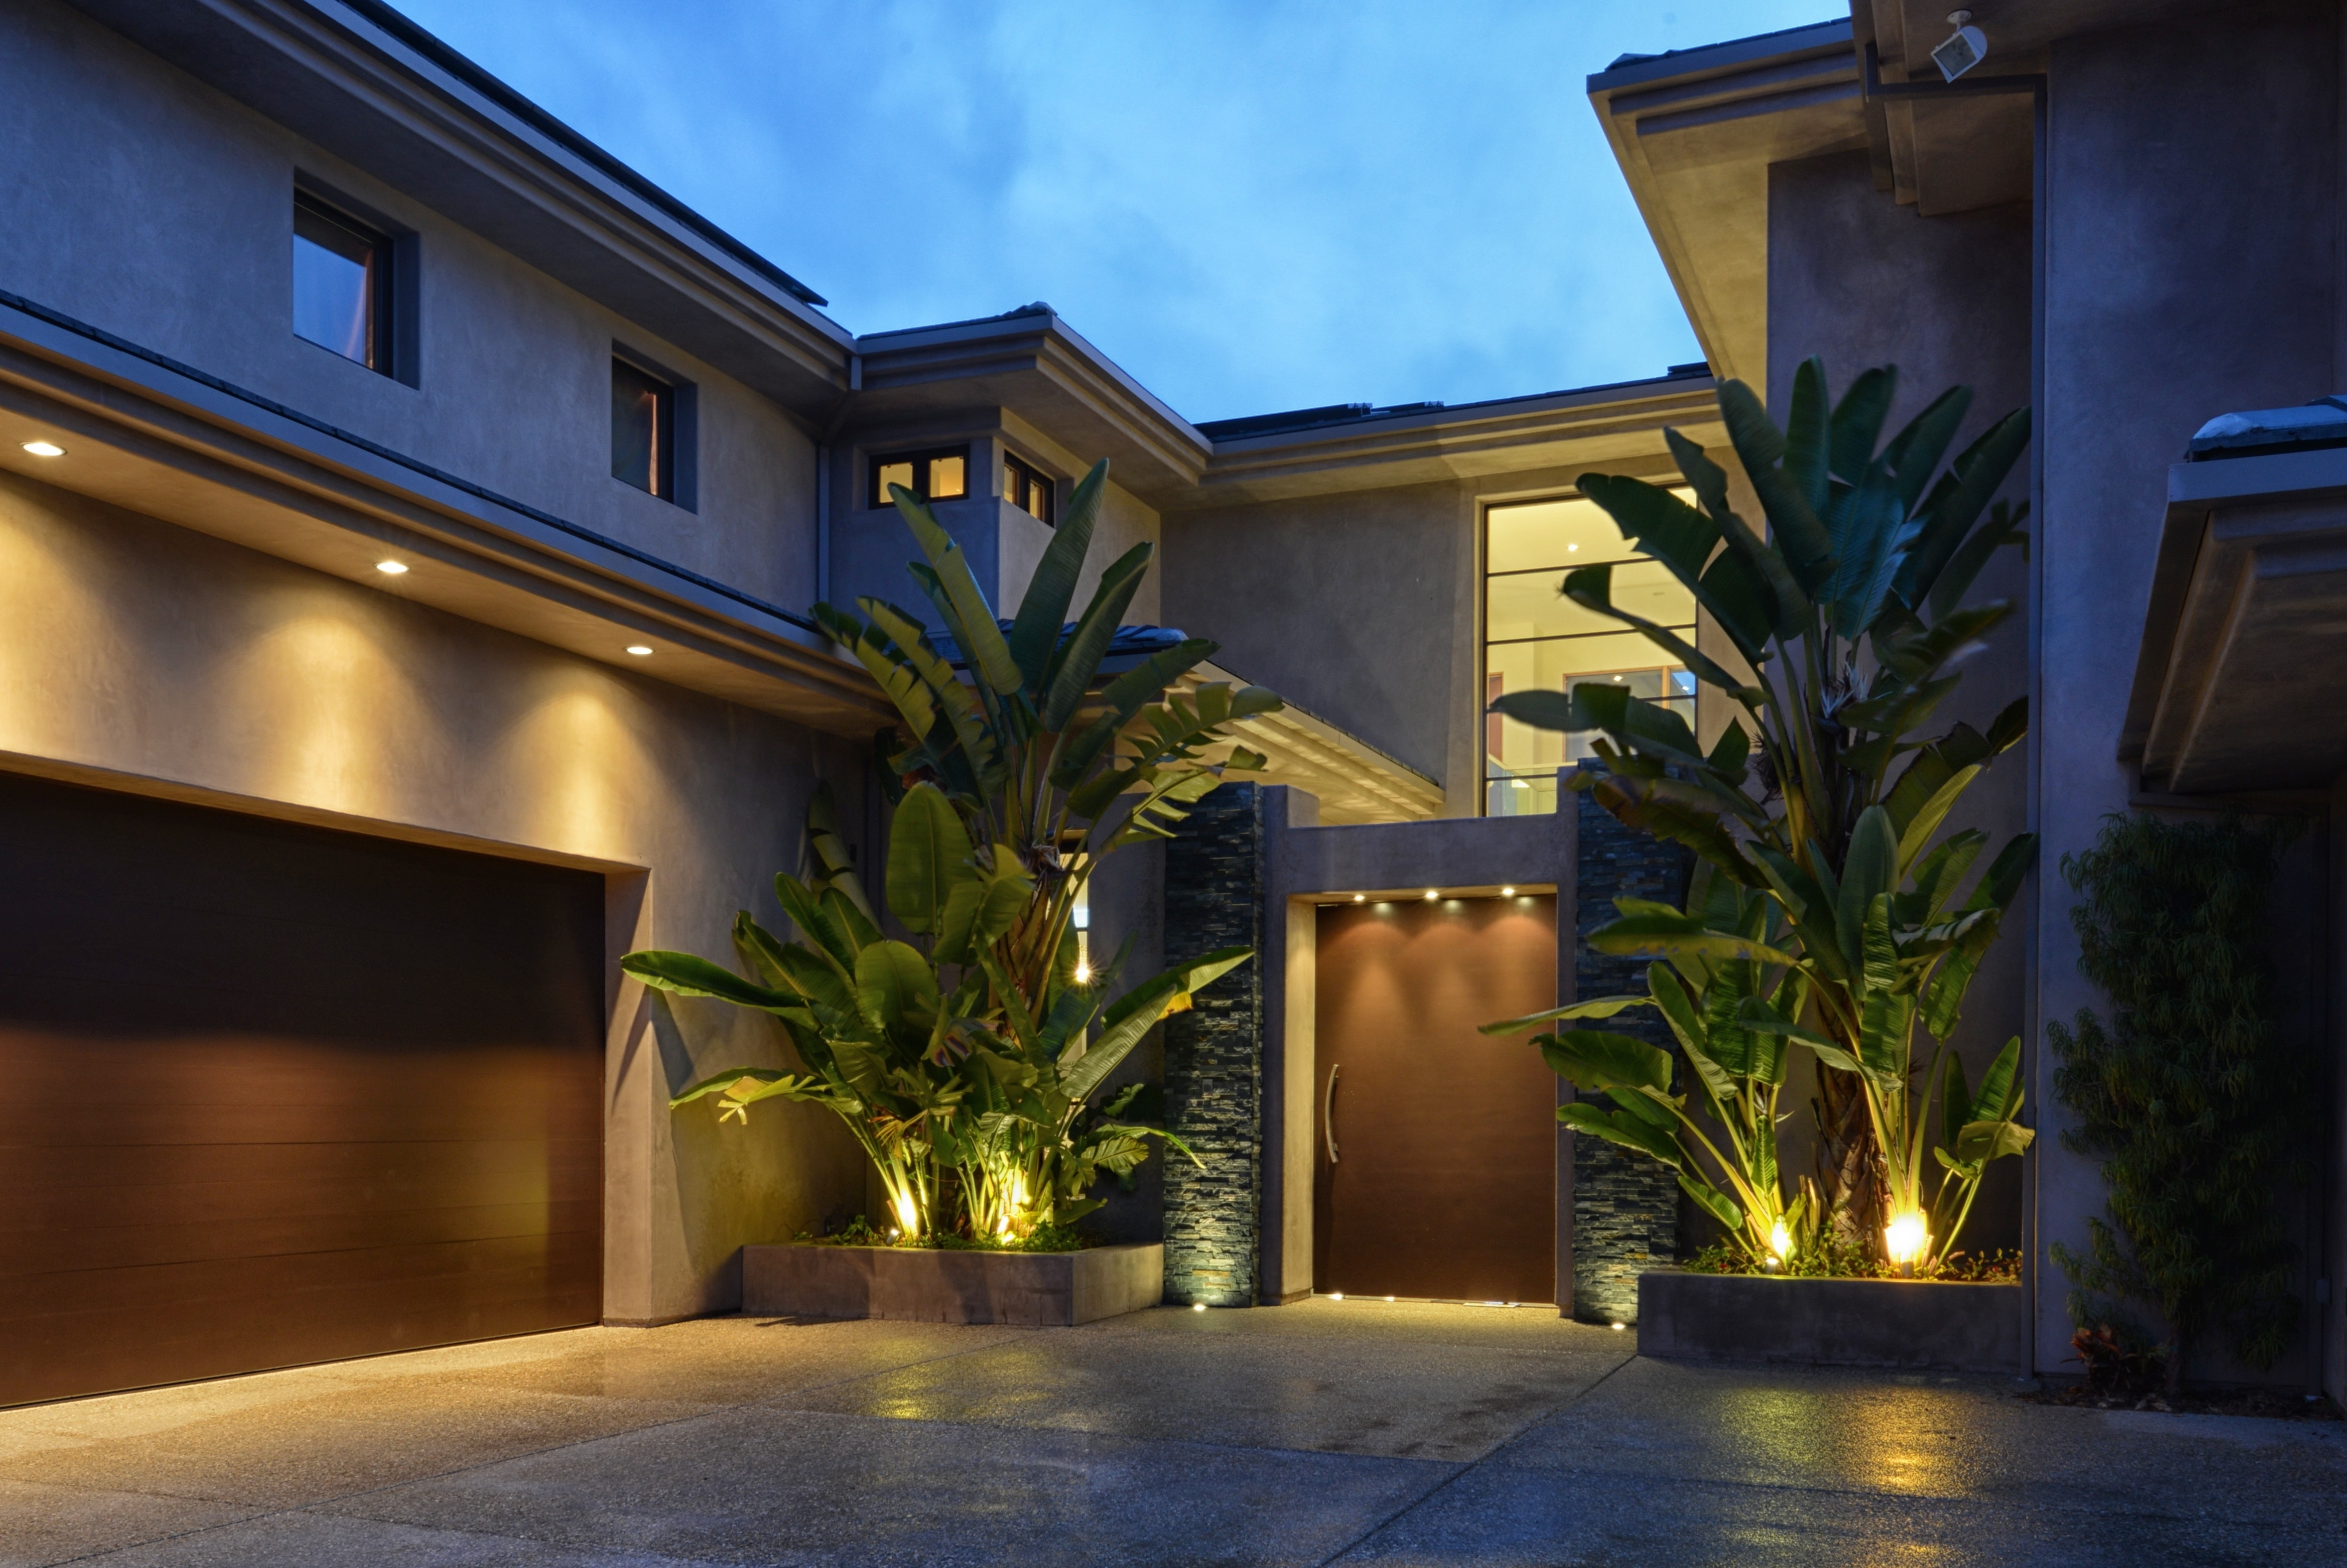 Outside Wall Lights For House Within 2018 Outdoor Garage : Outdoor Wall Lights Backyard Lights Landscape (View 17 of 20)